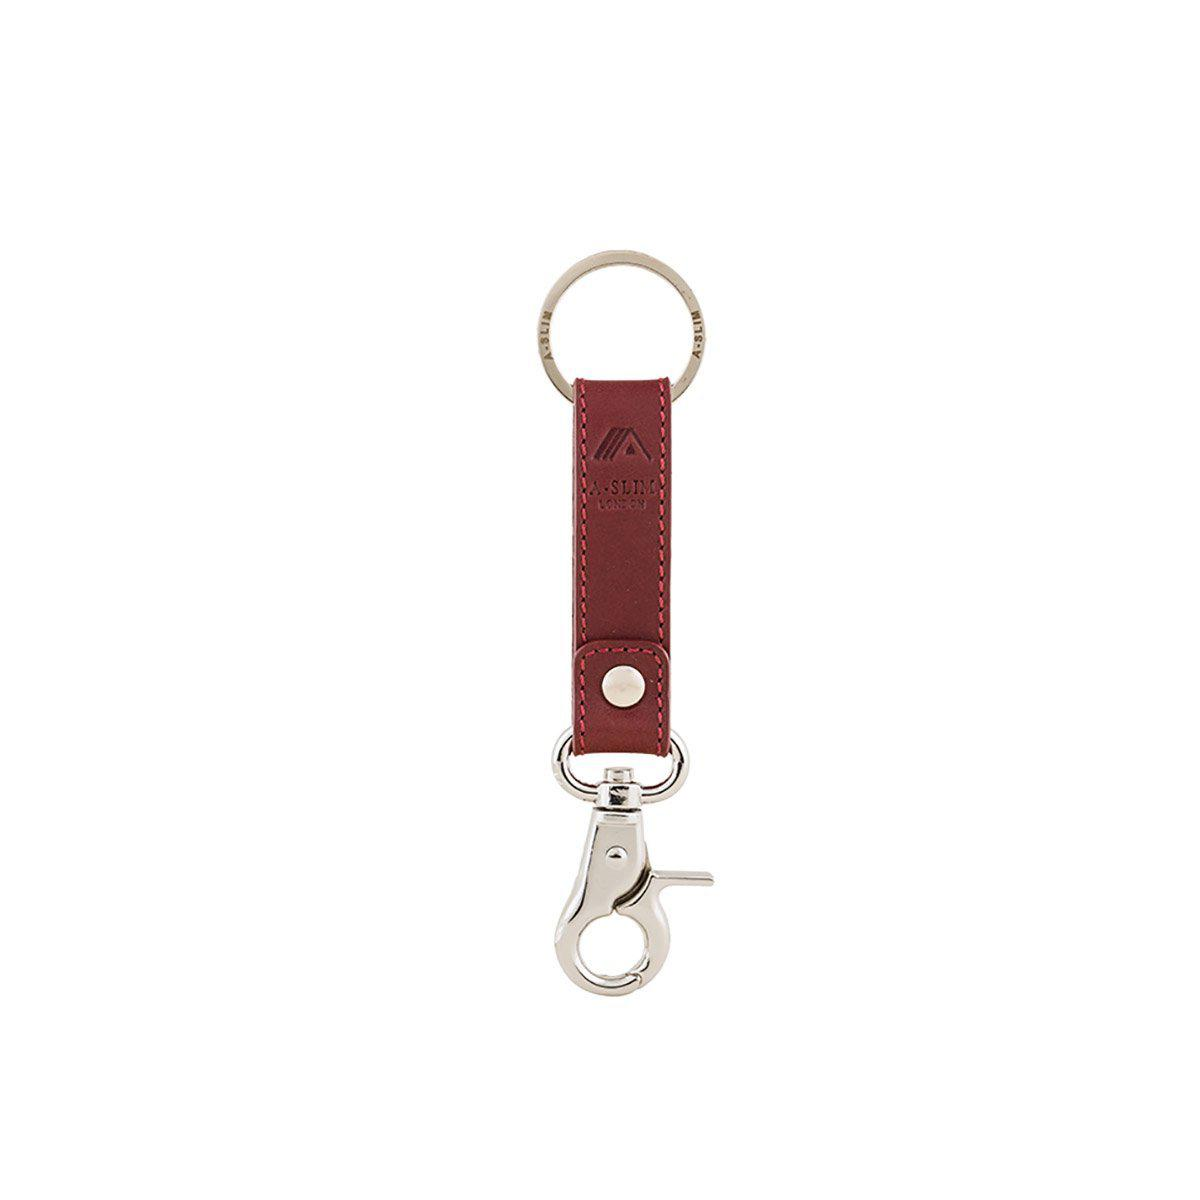 Keychain - Taiyo | Leather Belt-Clip Key Holder